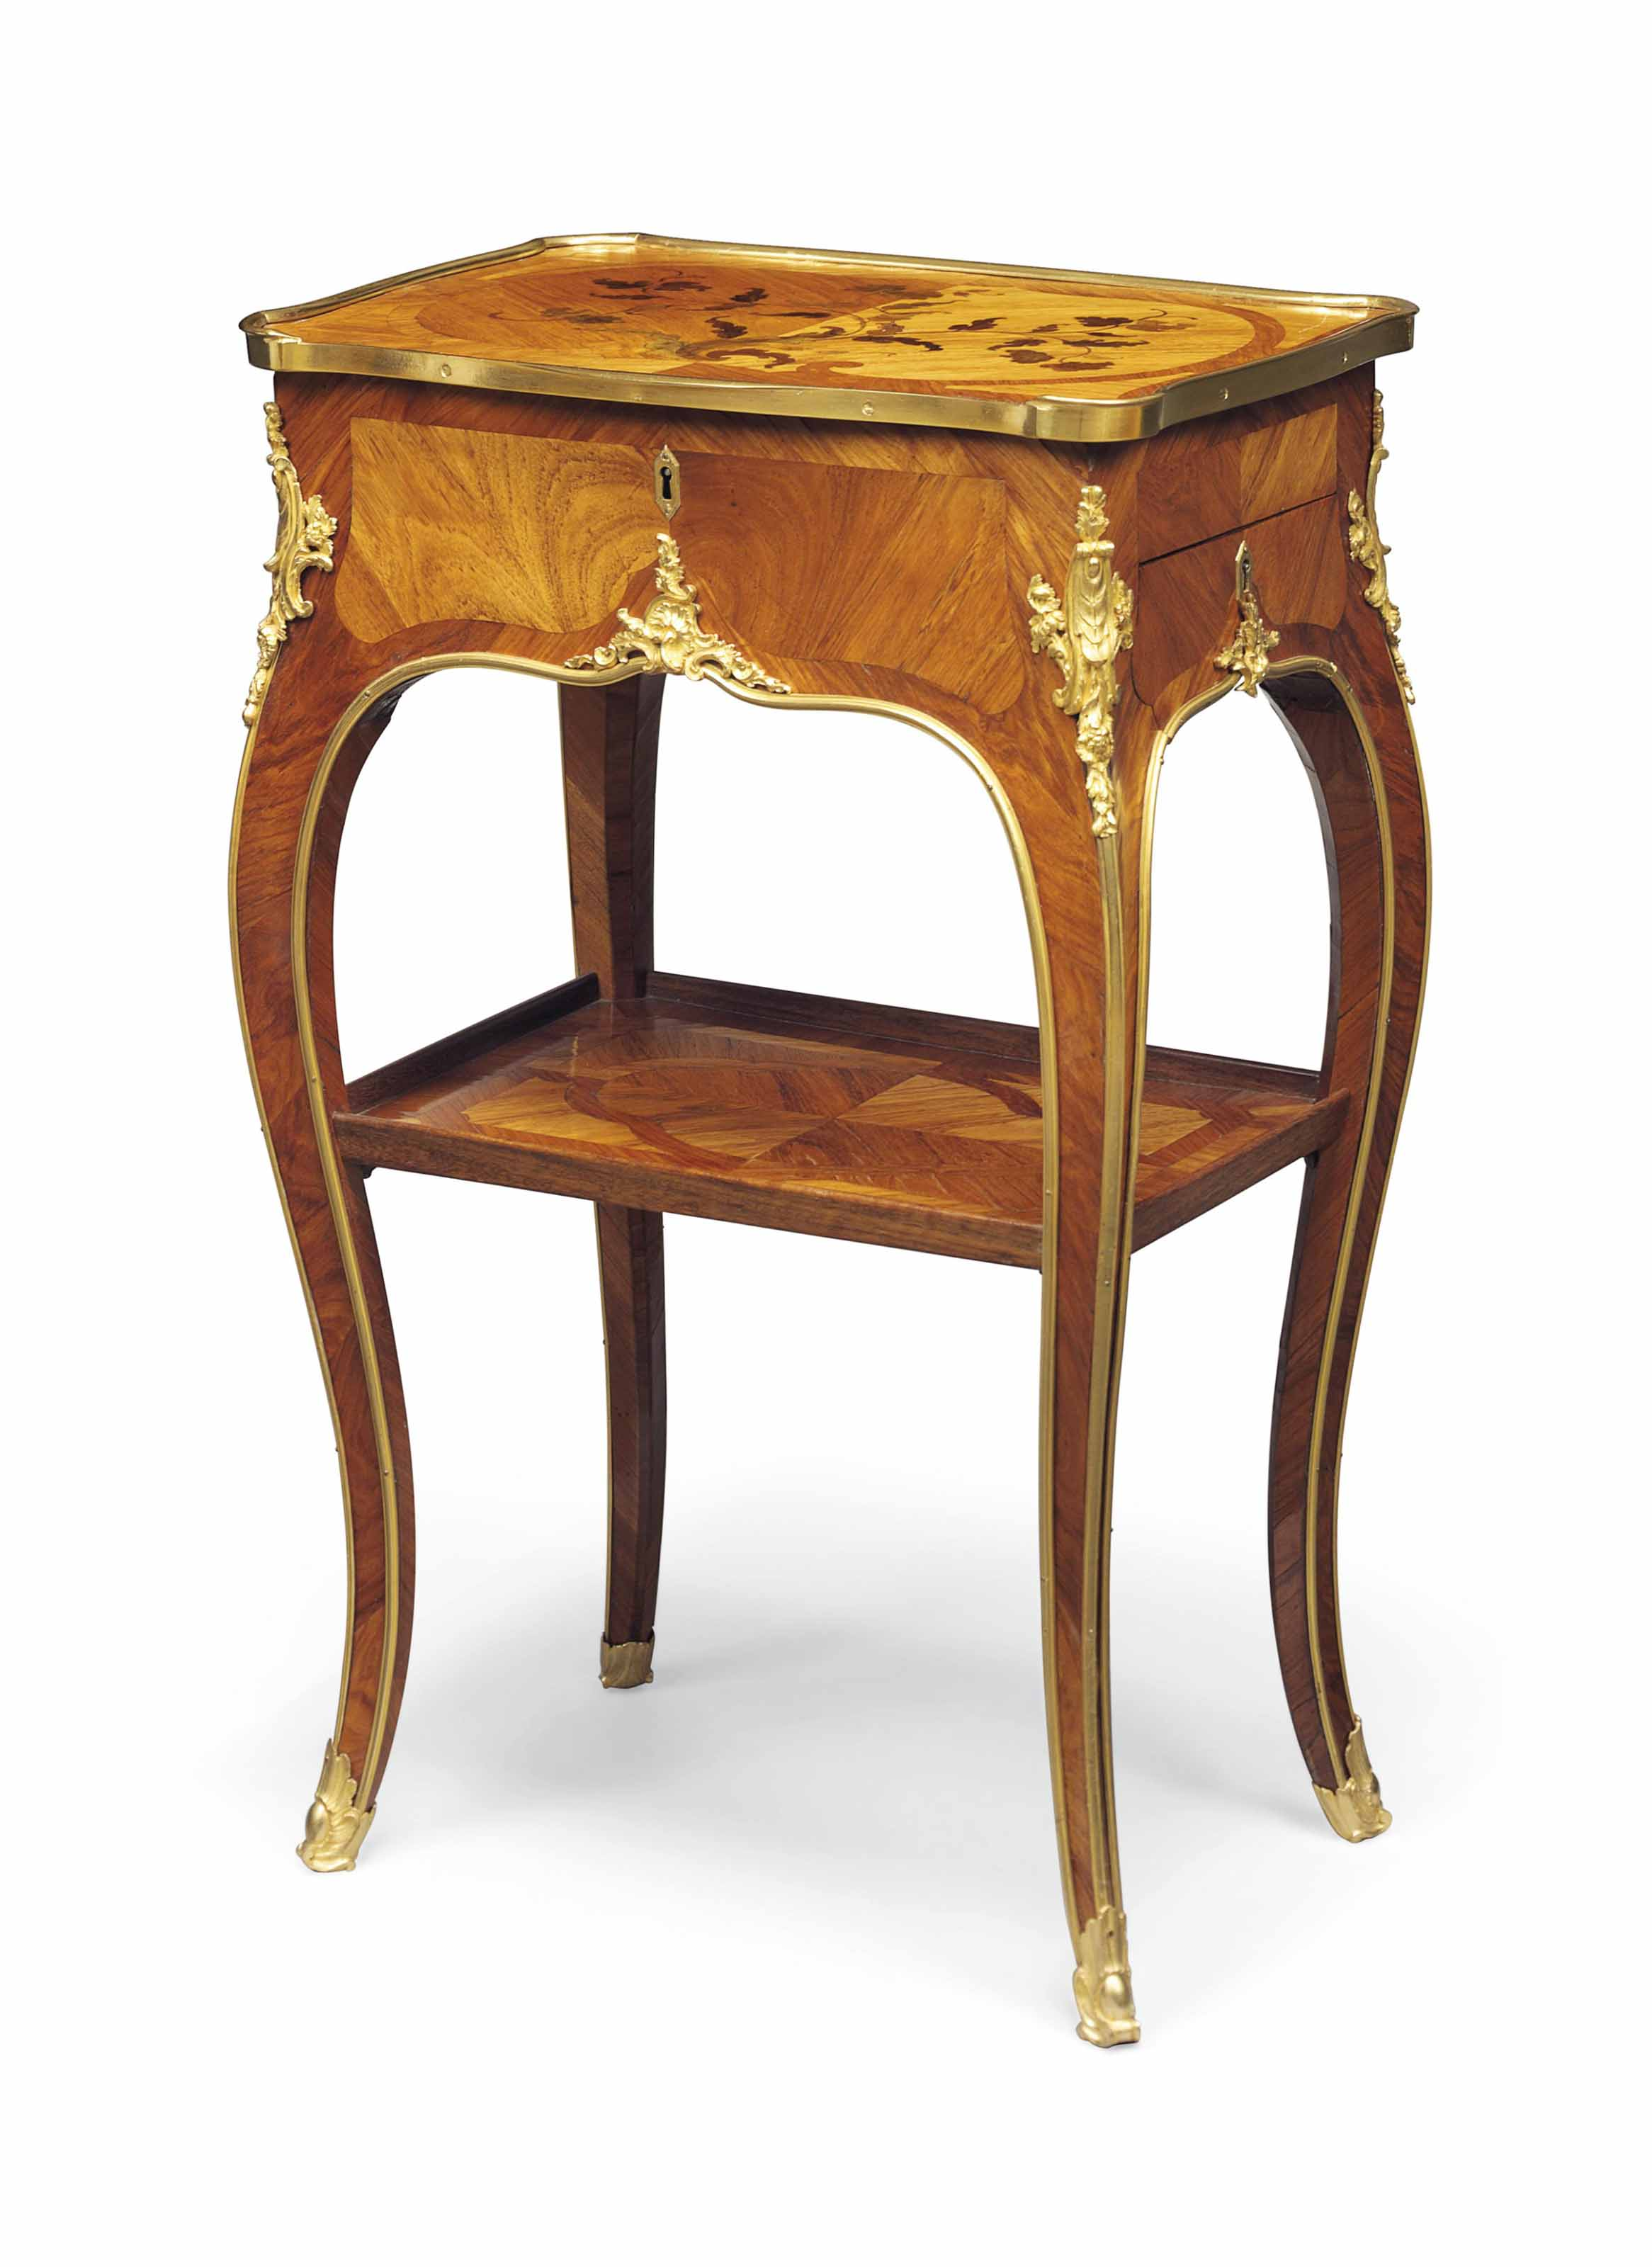 A LOUIS XV ORMOLU-MOUNTED TULIPWOOD, BOIS SATINE AND BOIS-DE-BOUT MARQUETRY TABLE EN CHIFFONNIERE